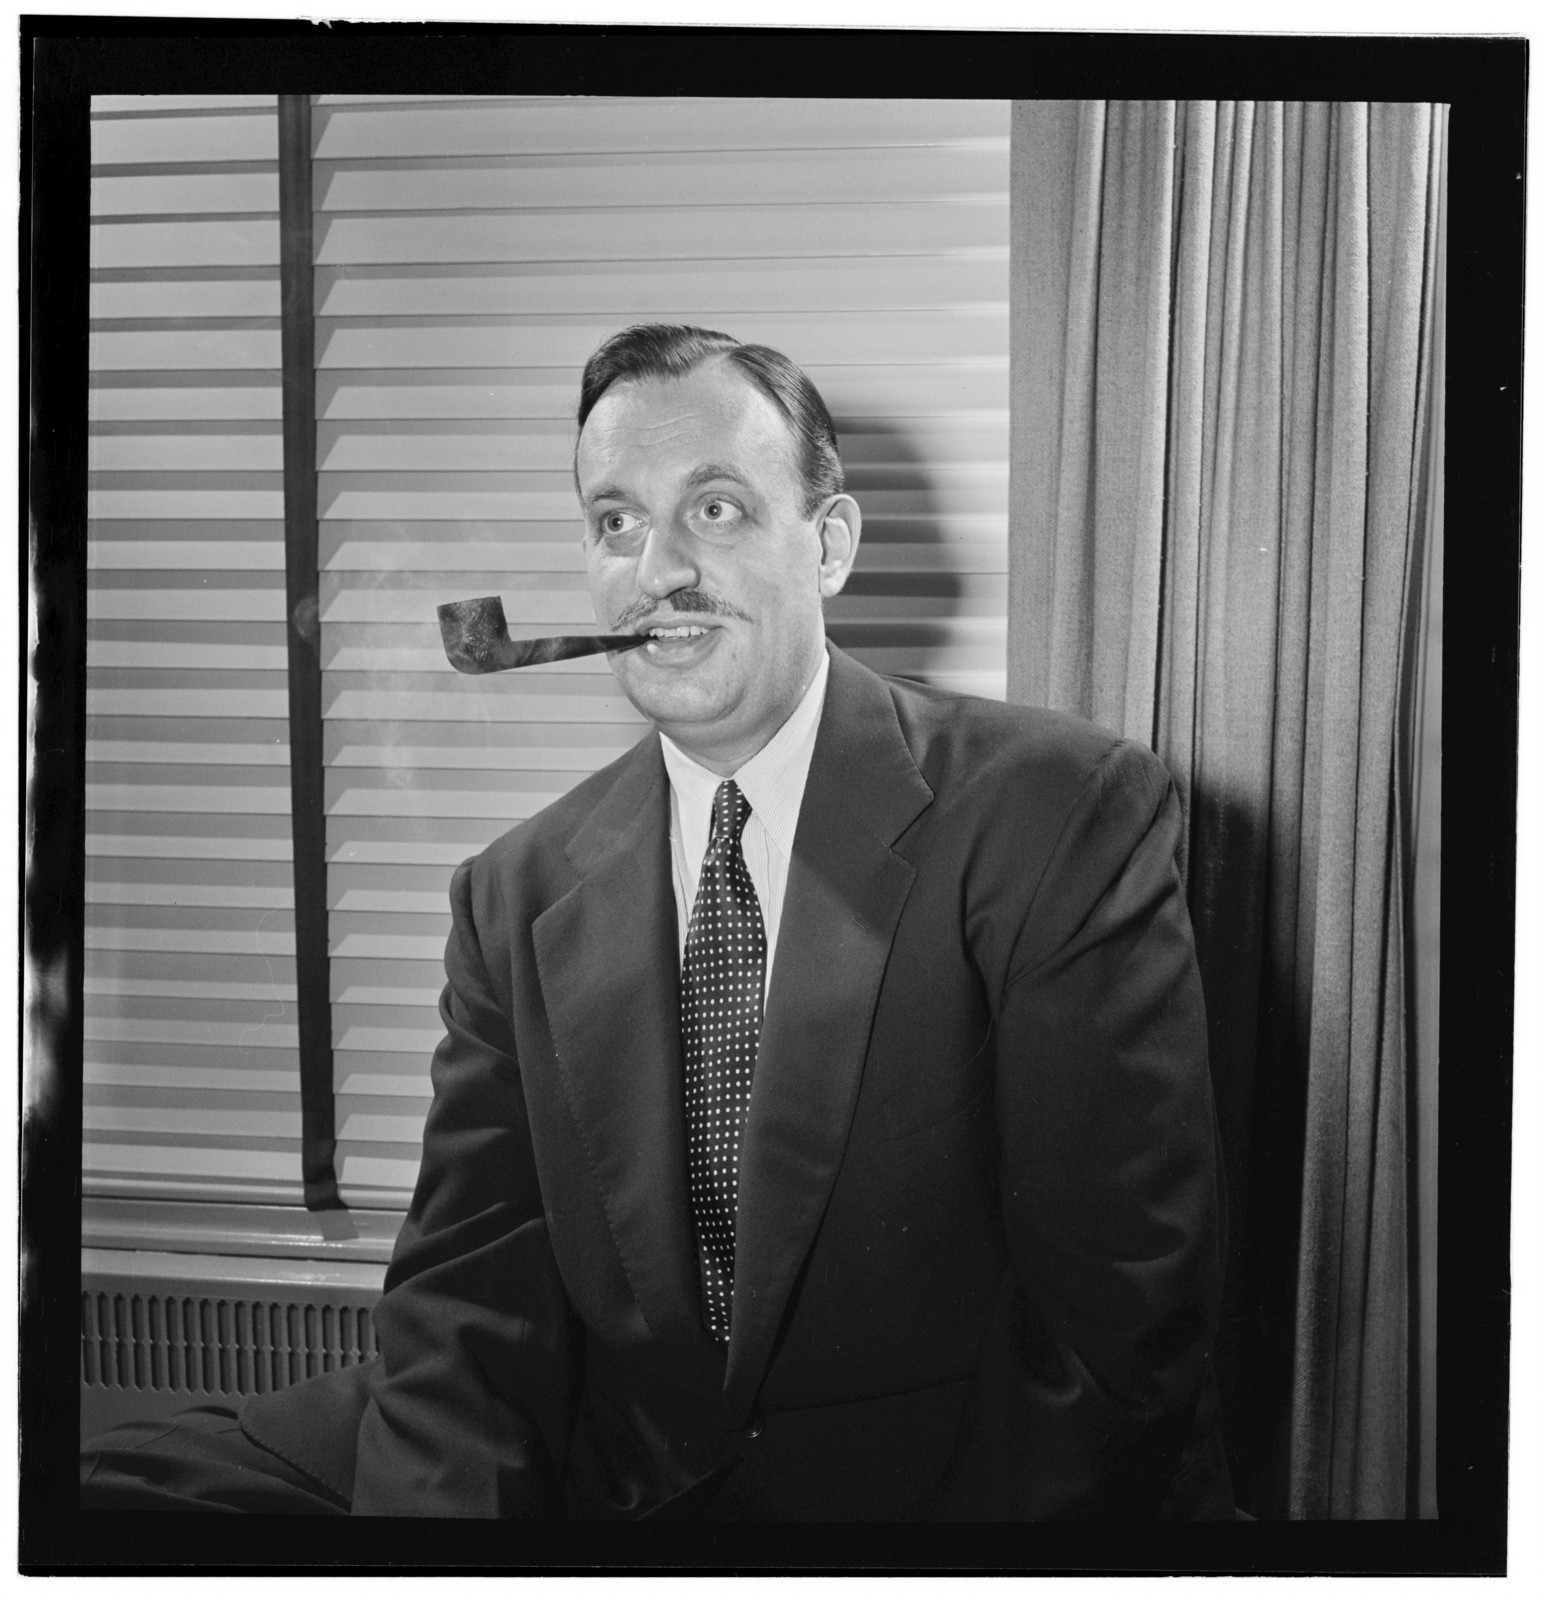 [Portrait of Brick Fleagle, New York, N.Y., between 1946 and 1948]